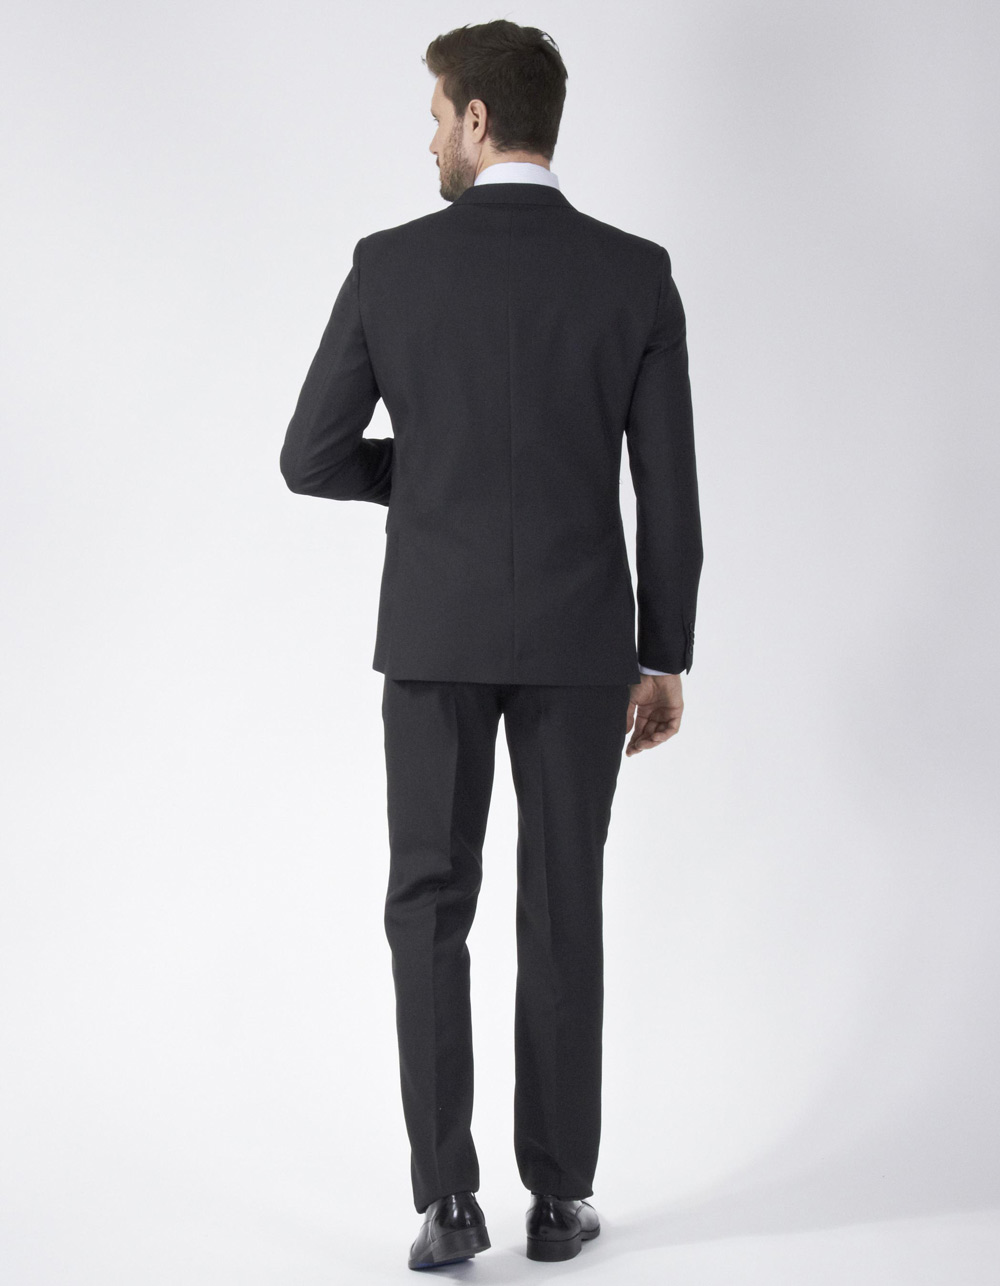 Black suit - Backside